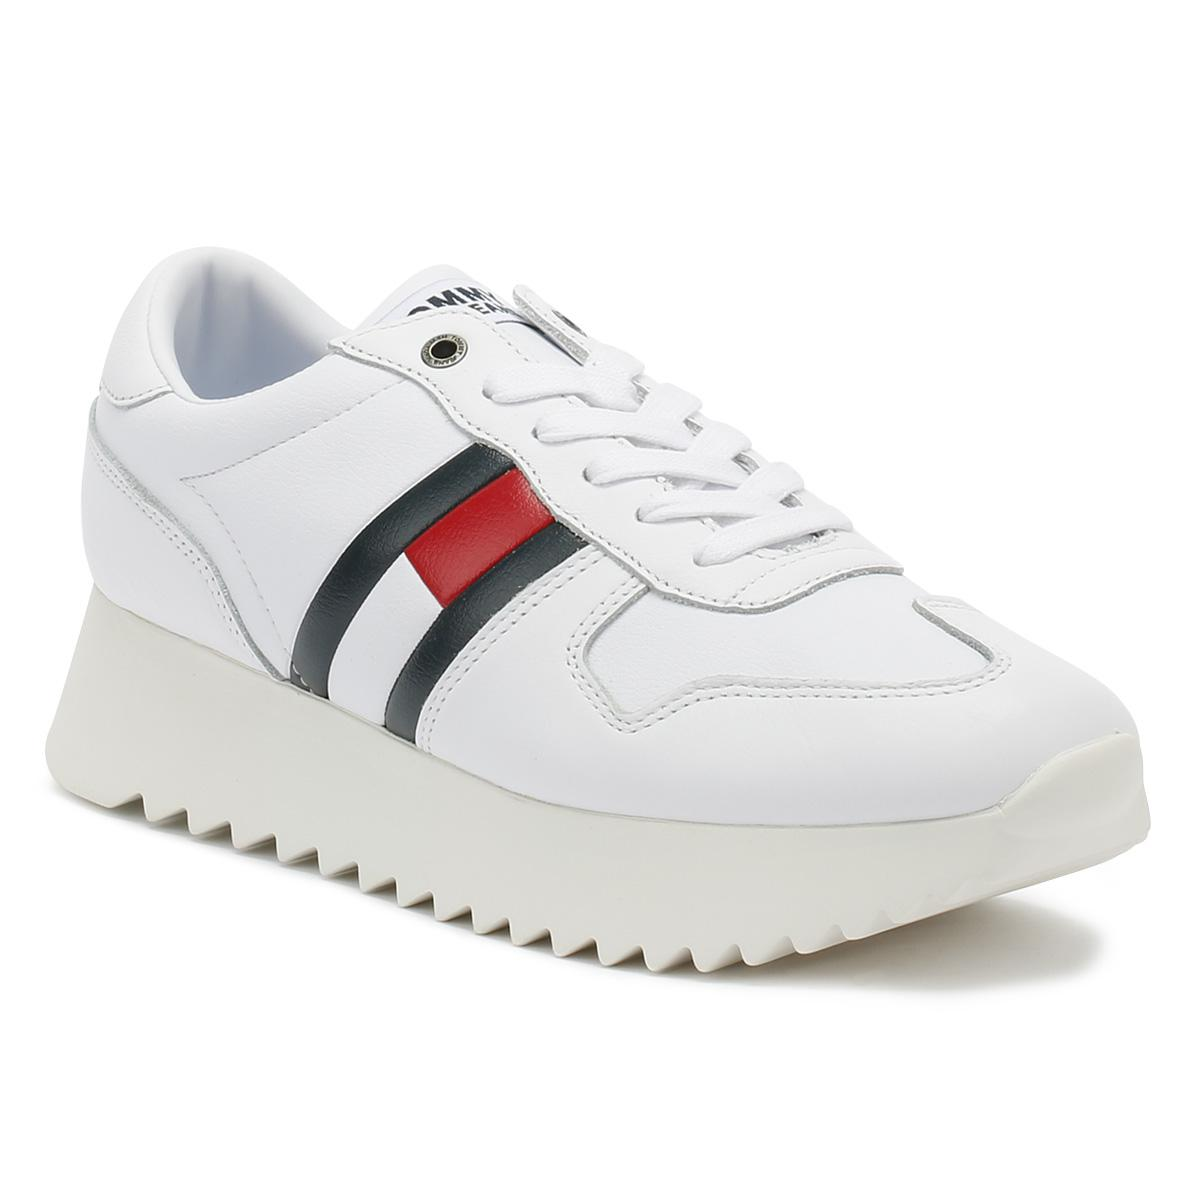 308a3f38 Tommy Hilfiger Womens White High Cleated Trainers in White - Lyst